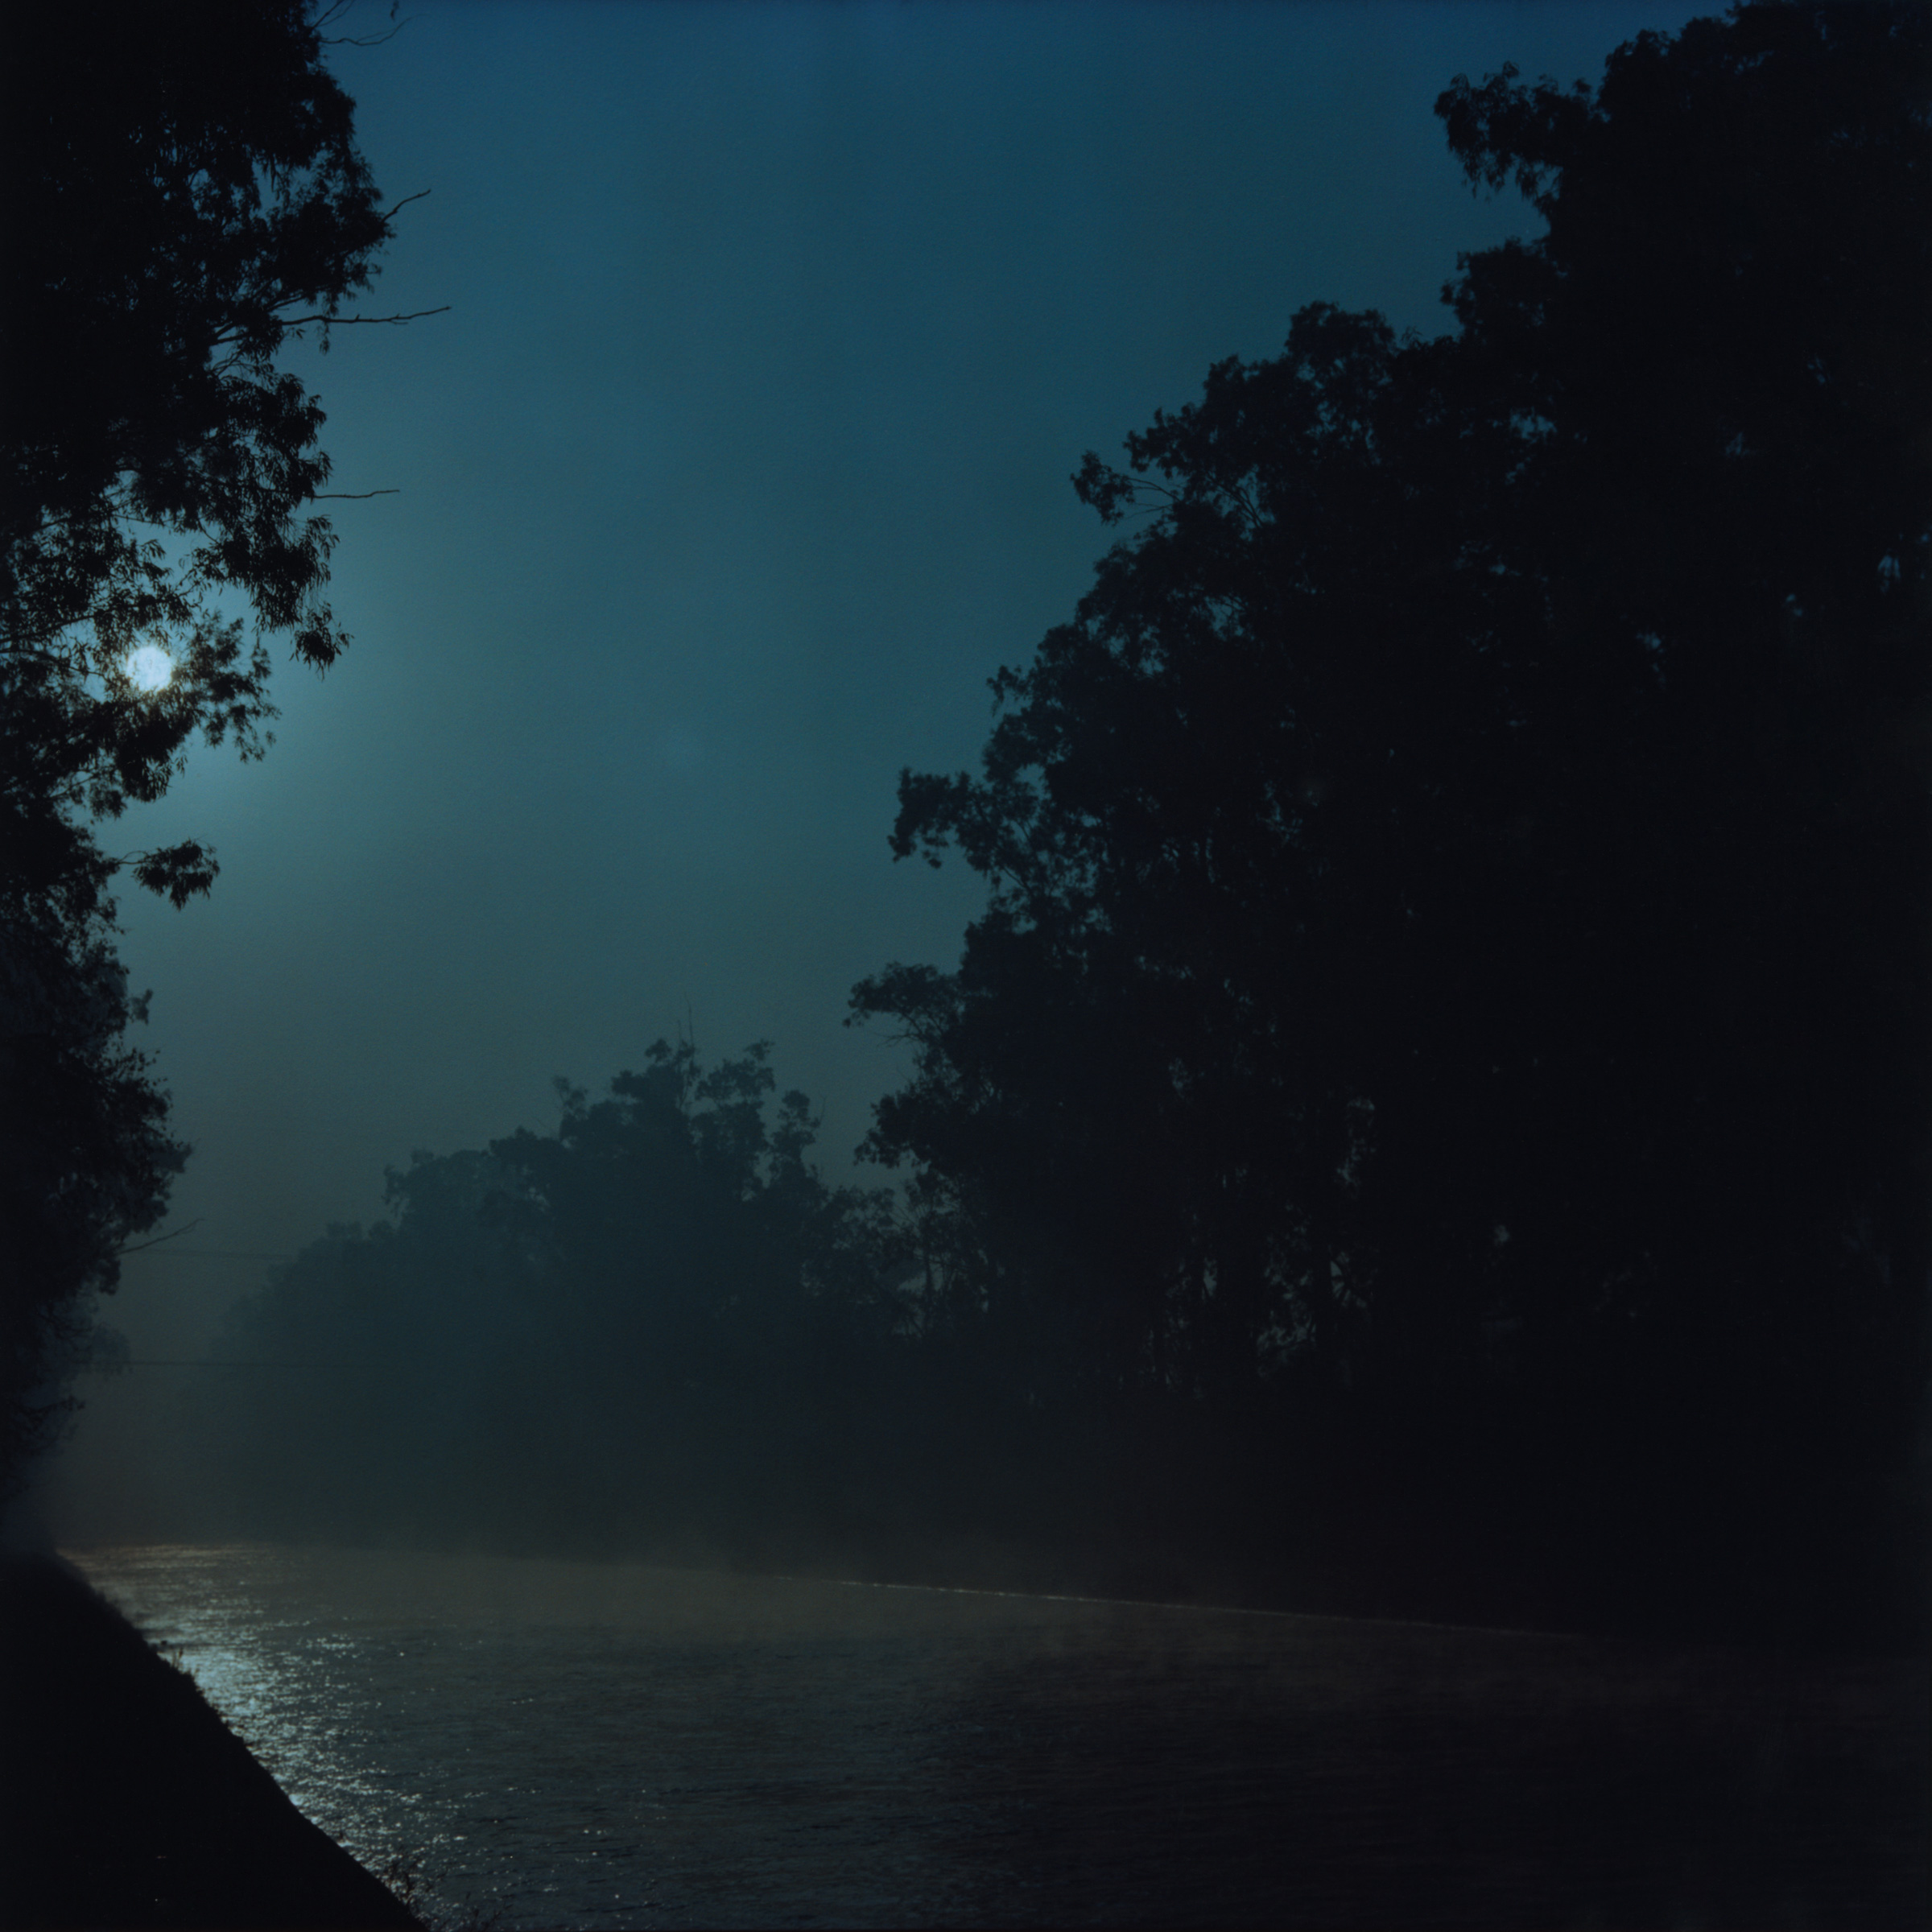 From the series 'Rice Pudding Moon & The River of Dreams'